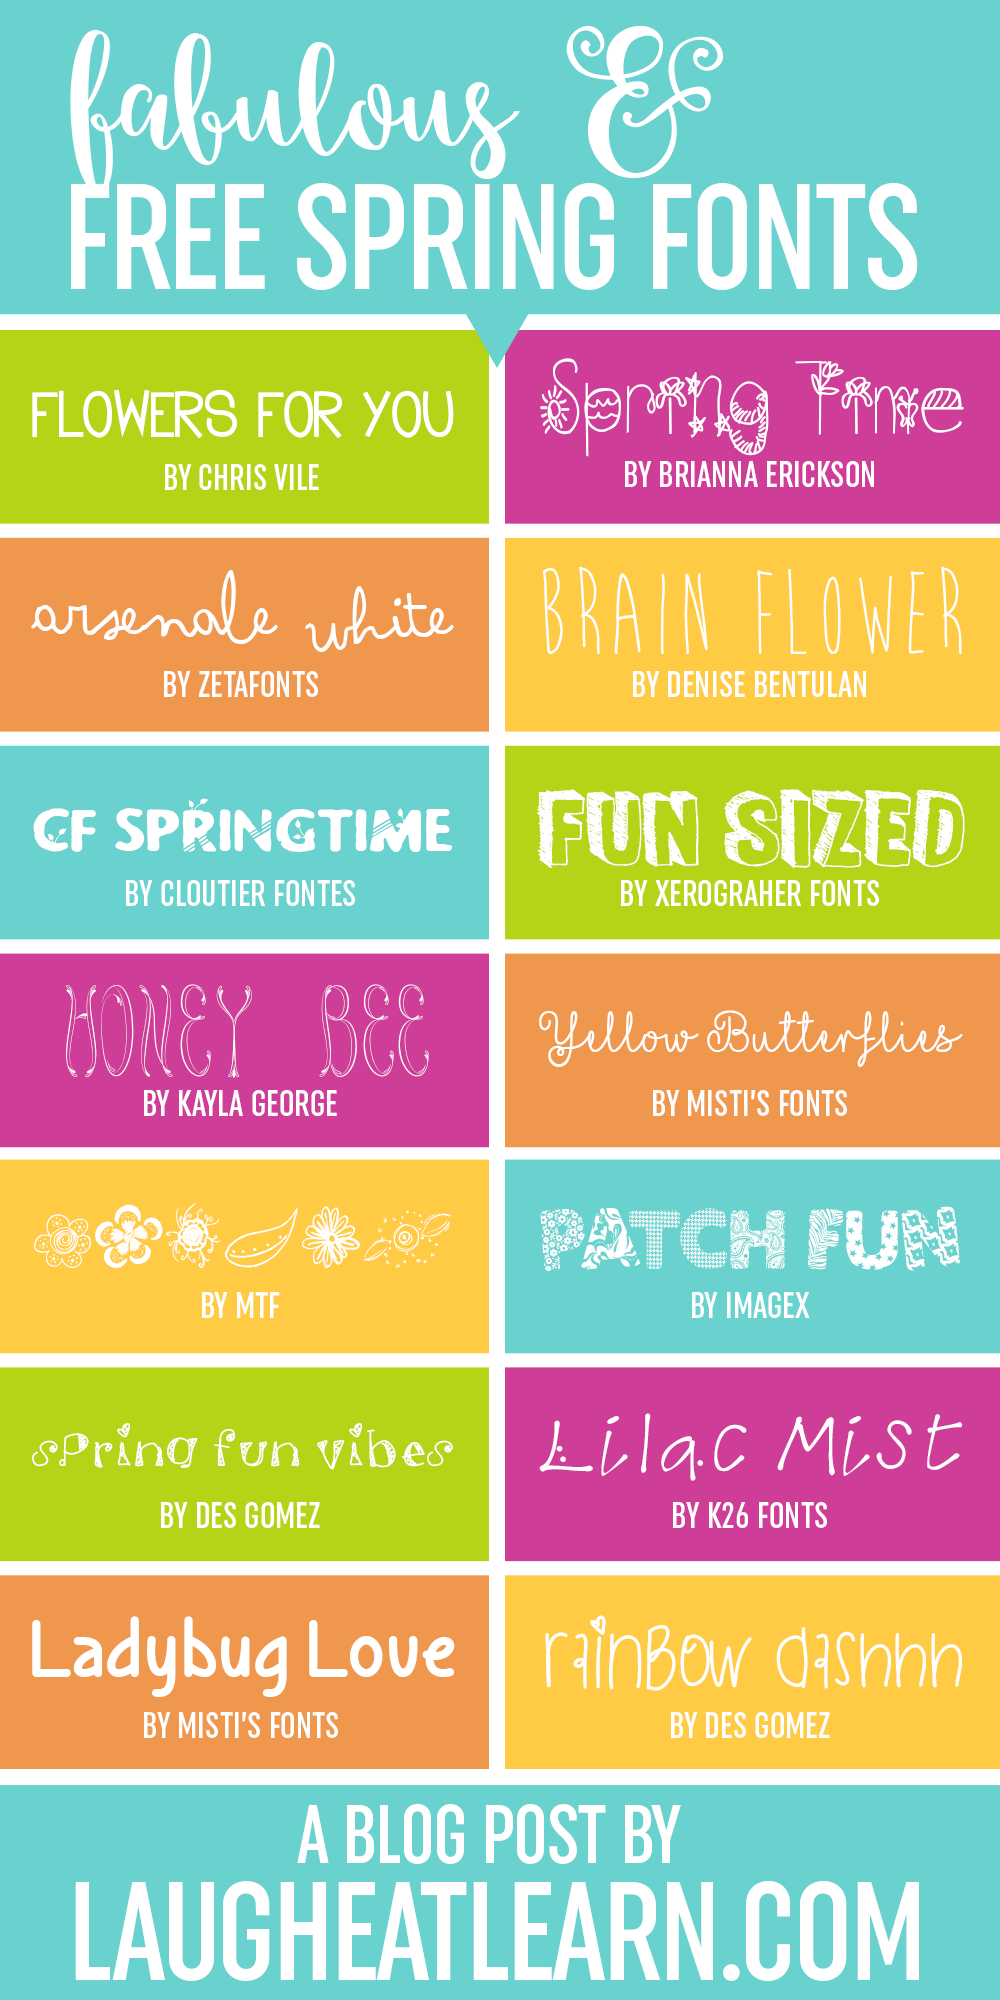 Whether it's raining, cloudy, or the sun is shining, you'll love these fun, funky, and FREE fonts perfect for any spring themed projects you are going to be working on.